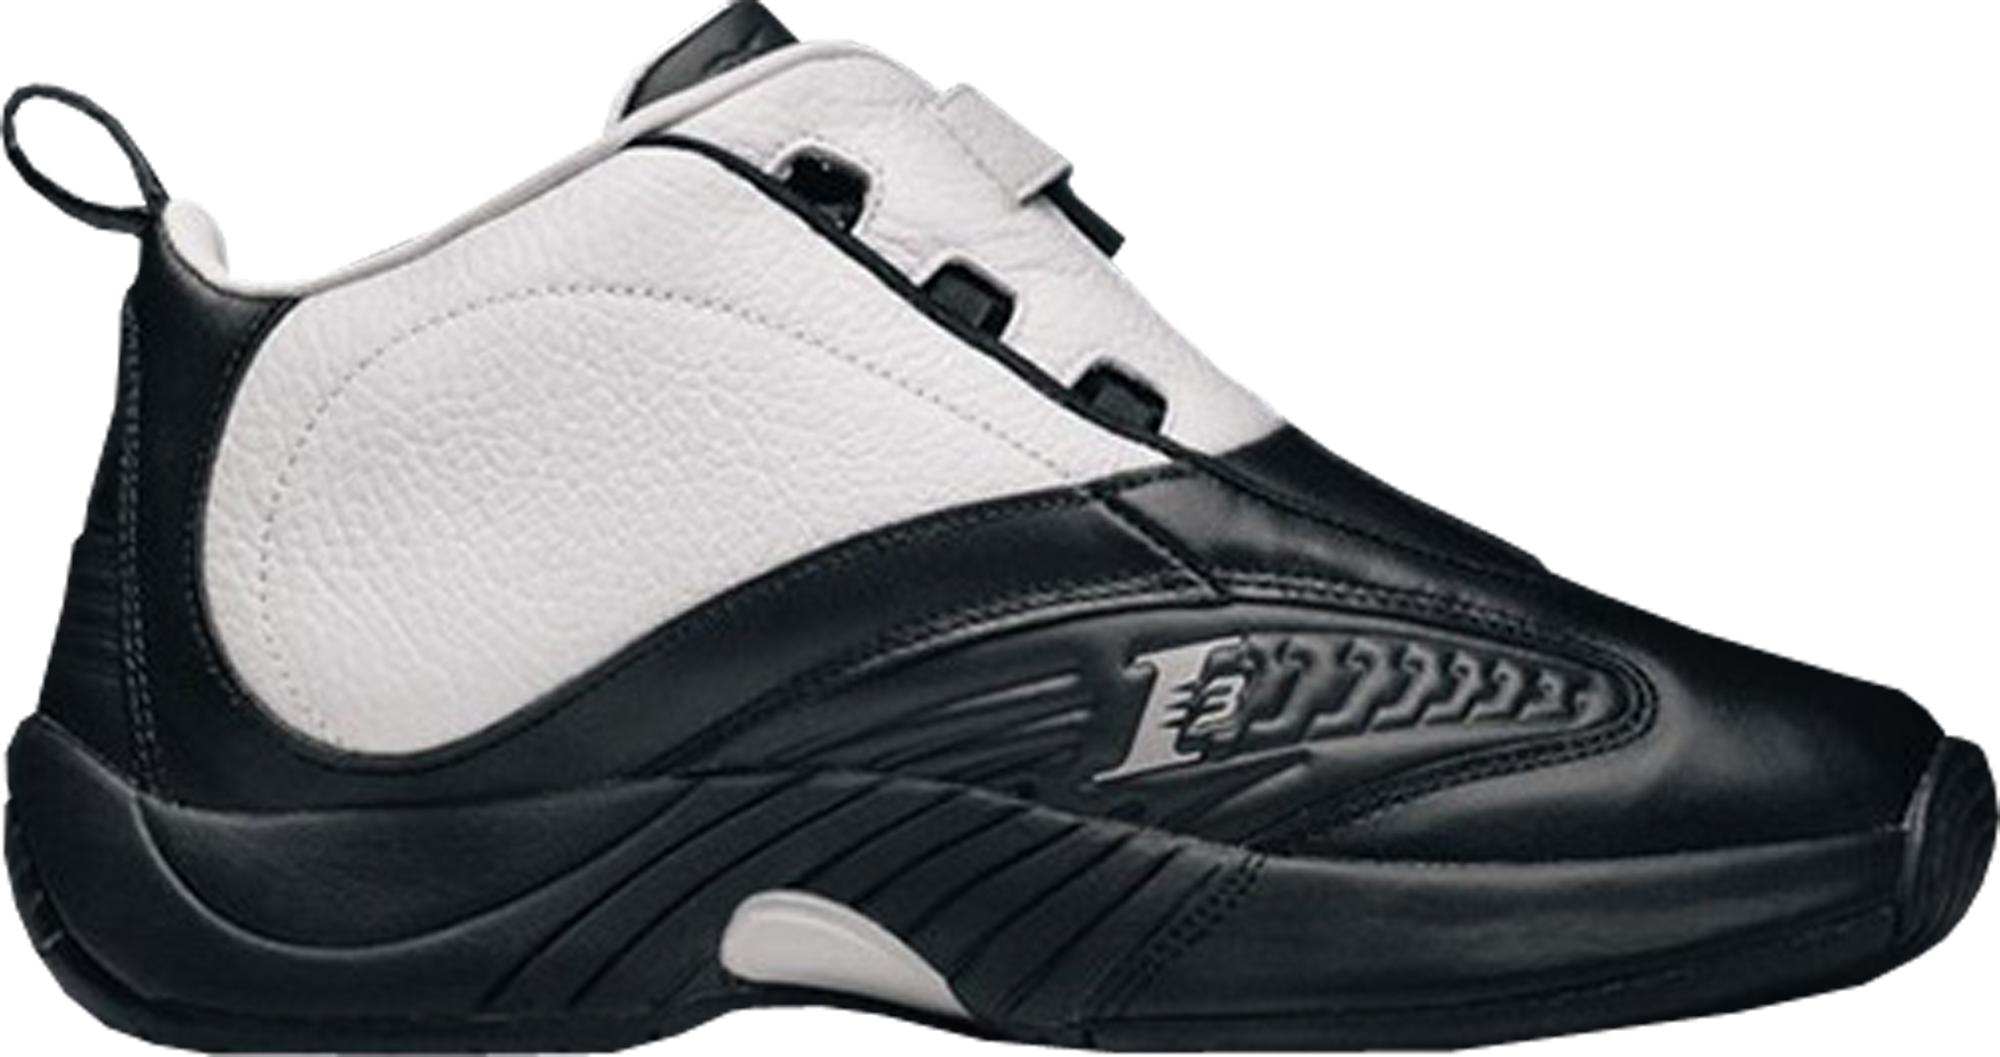 a55608ec26a Lyst - Reebok Answer Iv Stepover in Black for Men